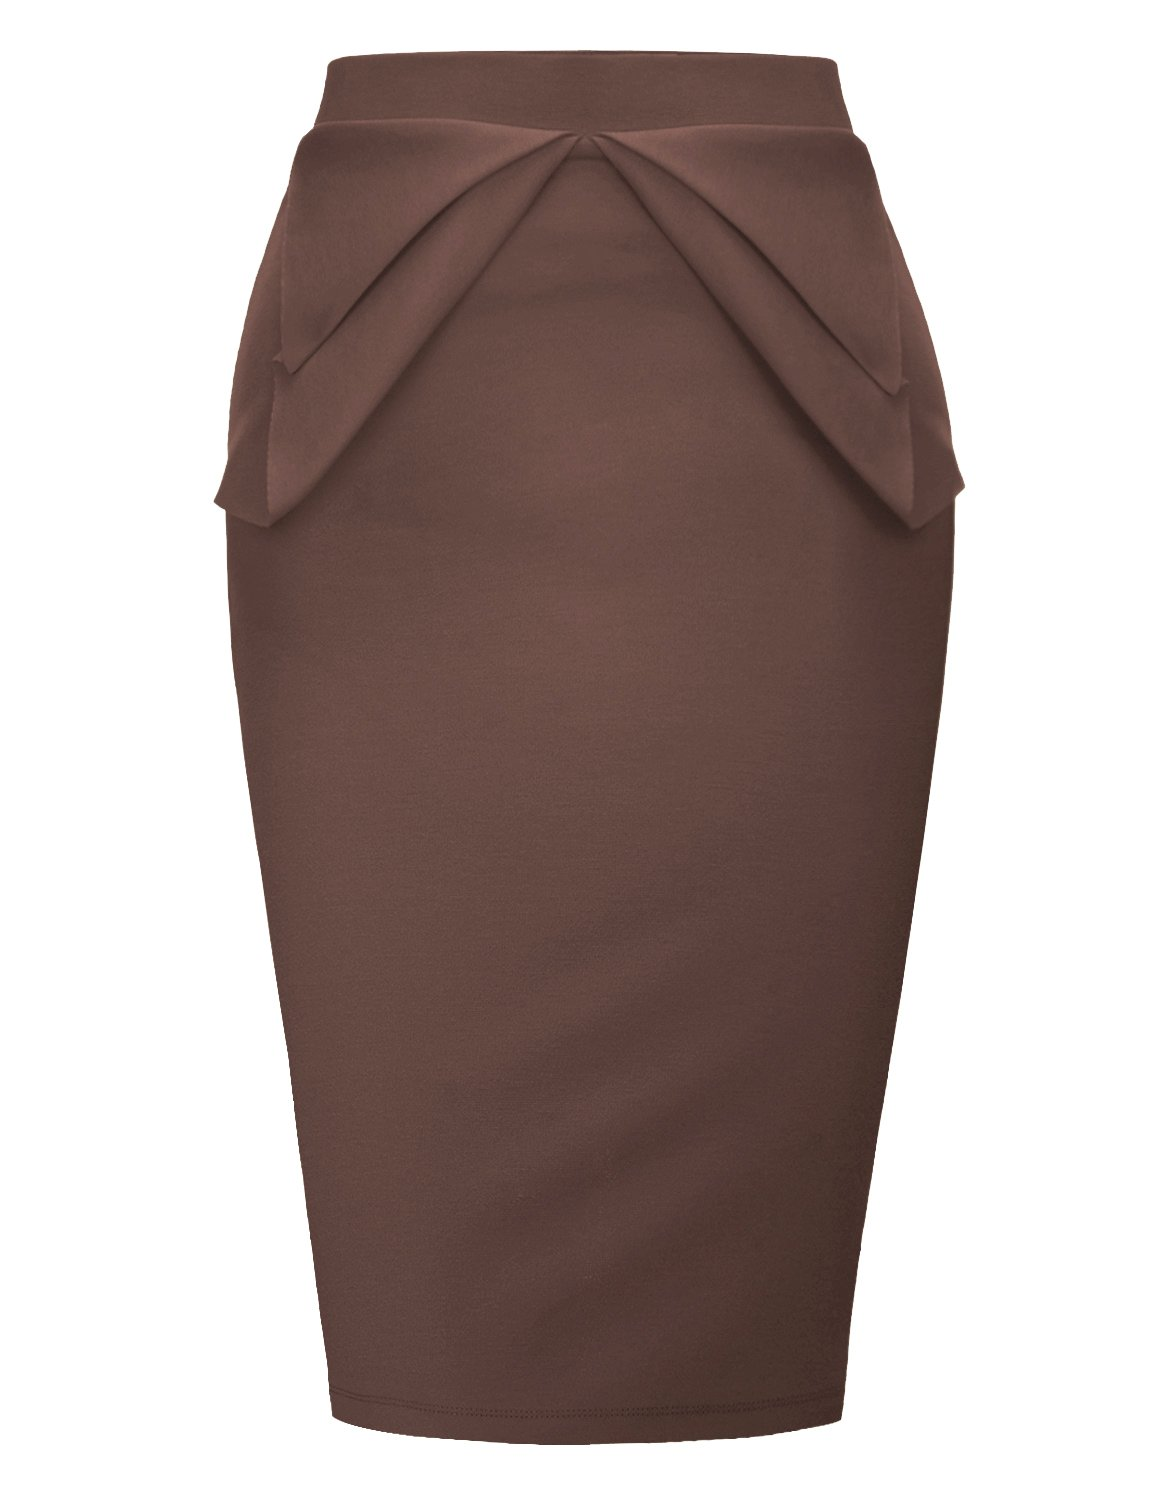 Regna X Womens high Waist Elastic Band Sexy Knee Length Skirts Brown XL by Regna X (Image #1)